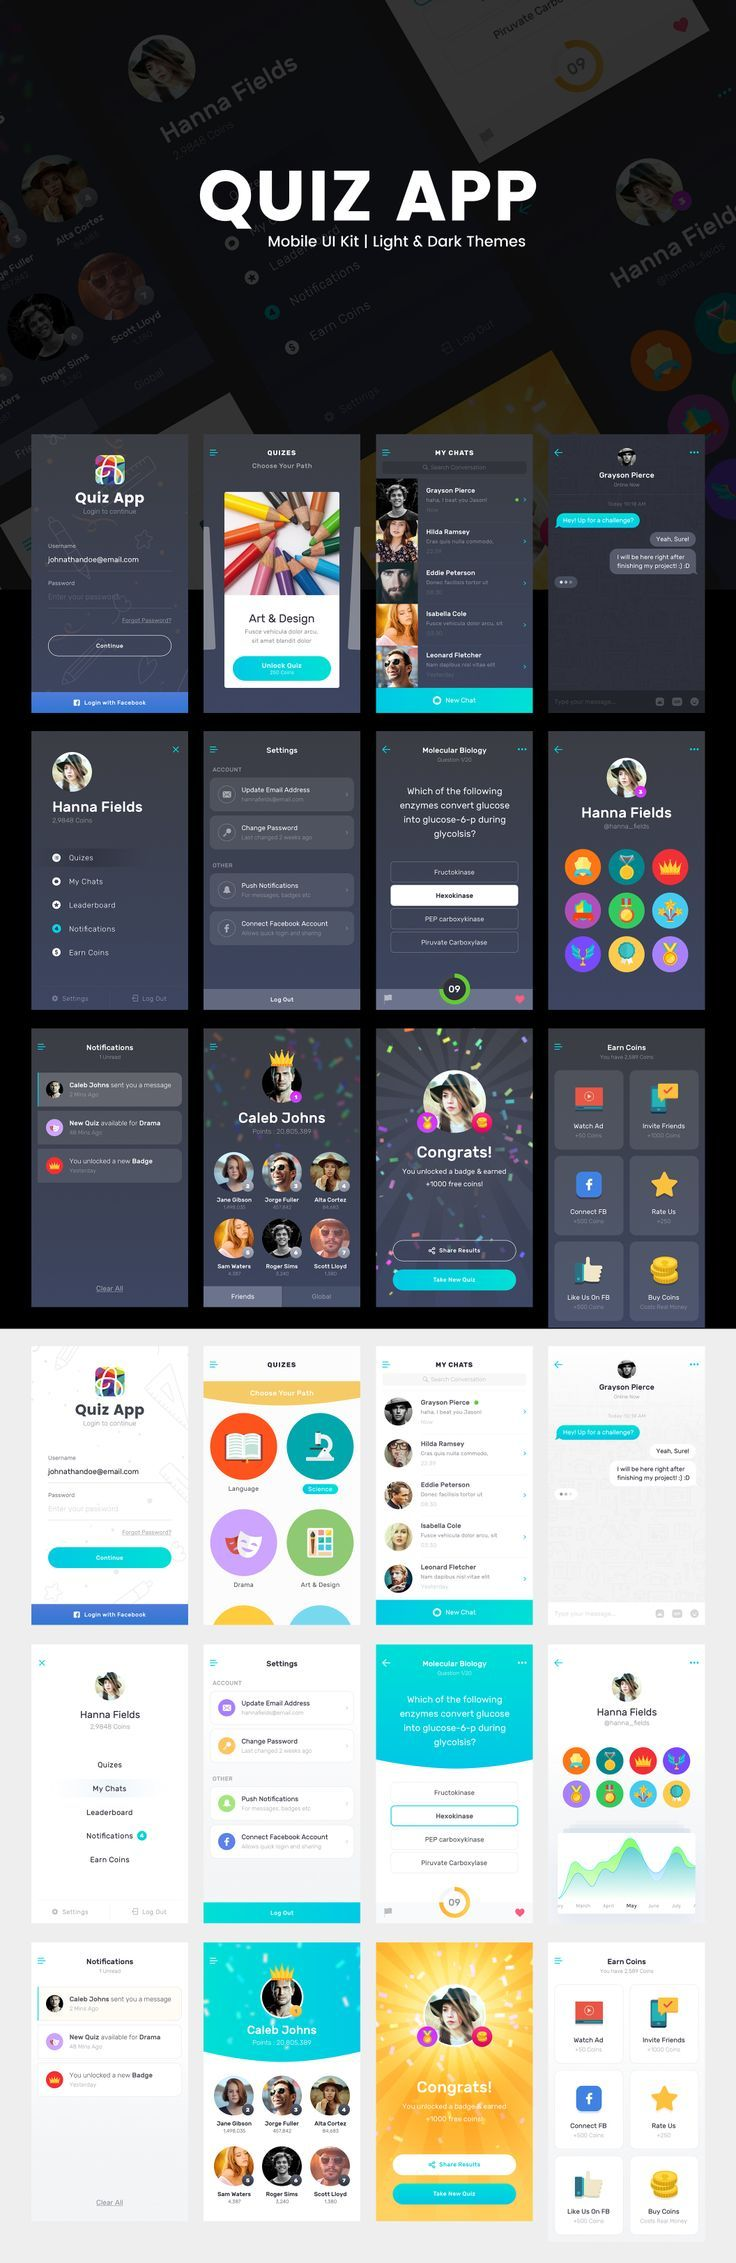 Quiz App is a mobile UI kit created using Sketch, aimed to